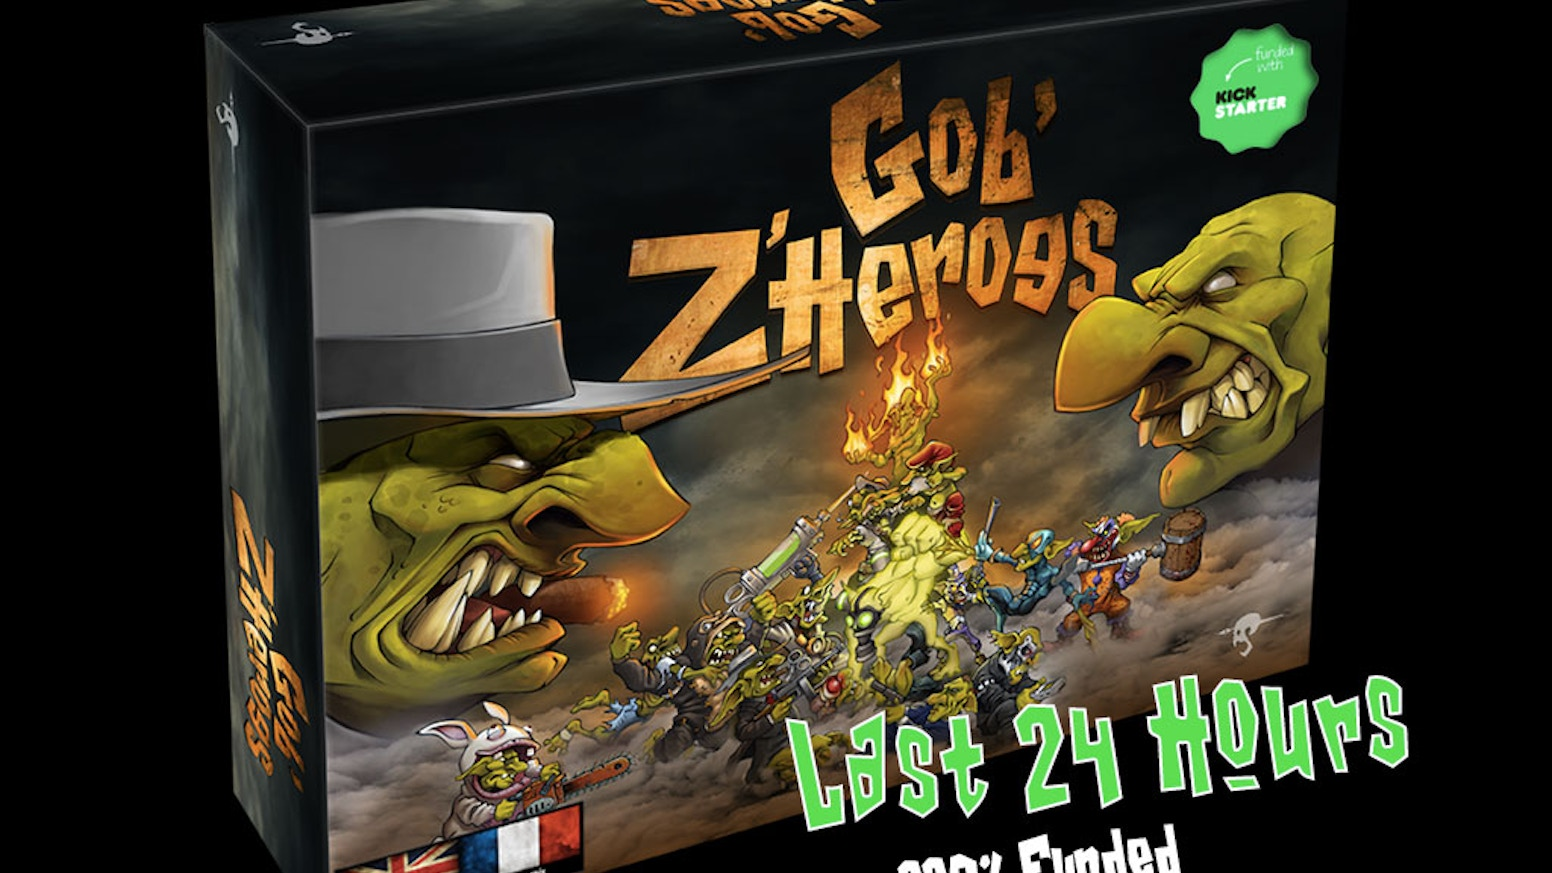 Gobzheroes The Game By Lumberjacks Studio Kickstarter Switch Lego Marvel Super Heroes 2 English Asia Games A Board Clash Where Gobz Try To Be